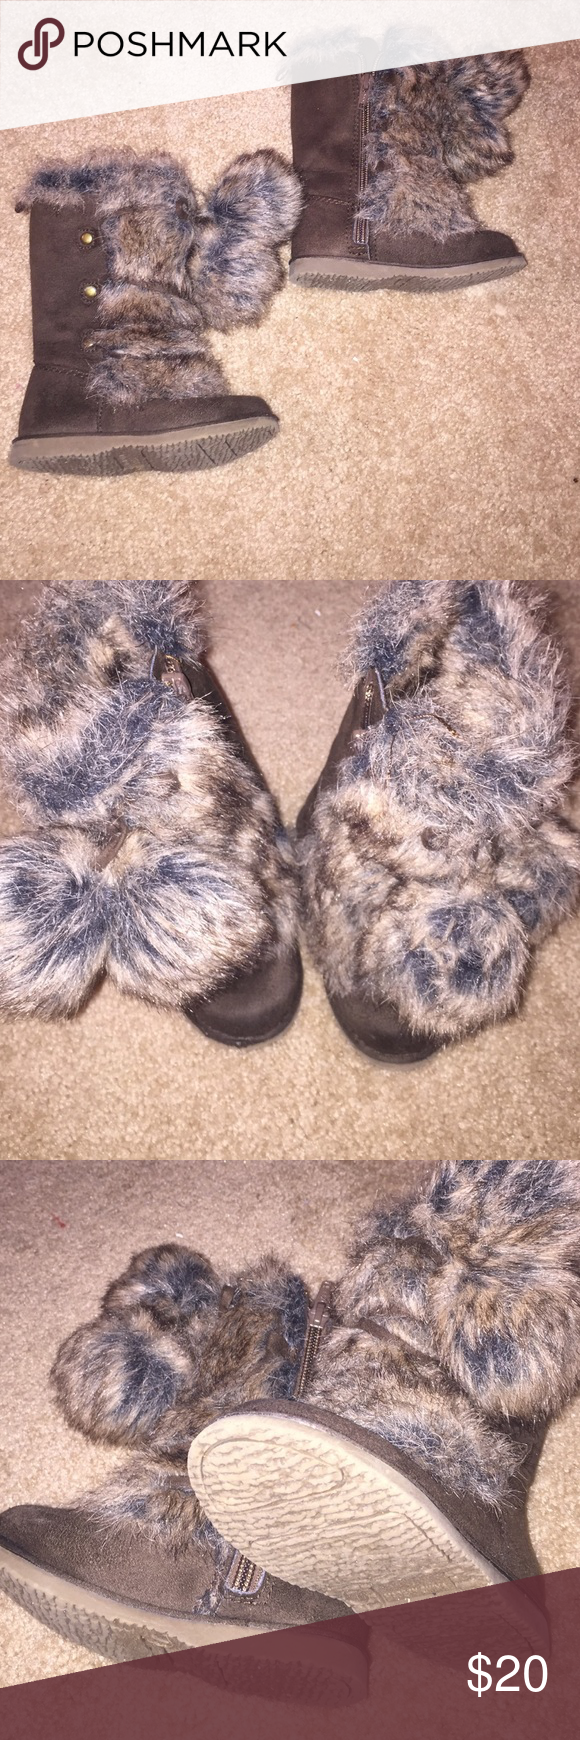 Warm boots Gently used, warm boots for winter Old Navy Shoes Boots